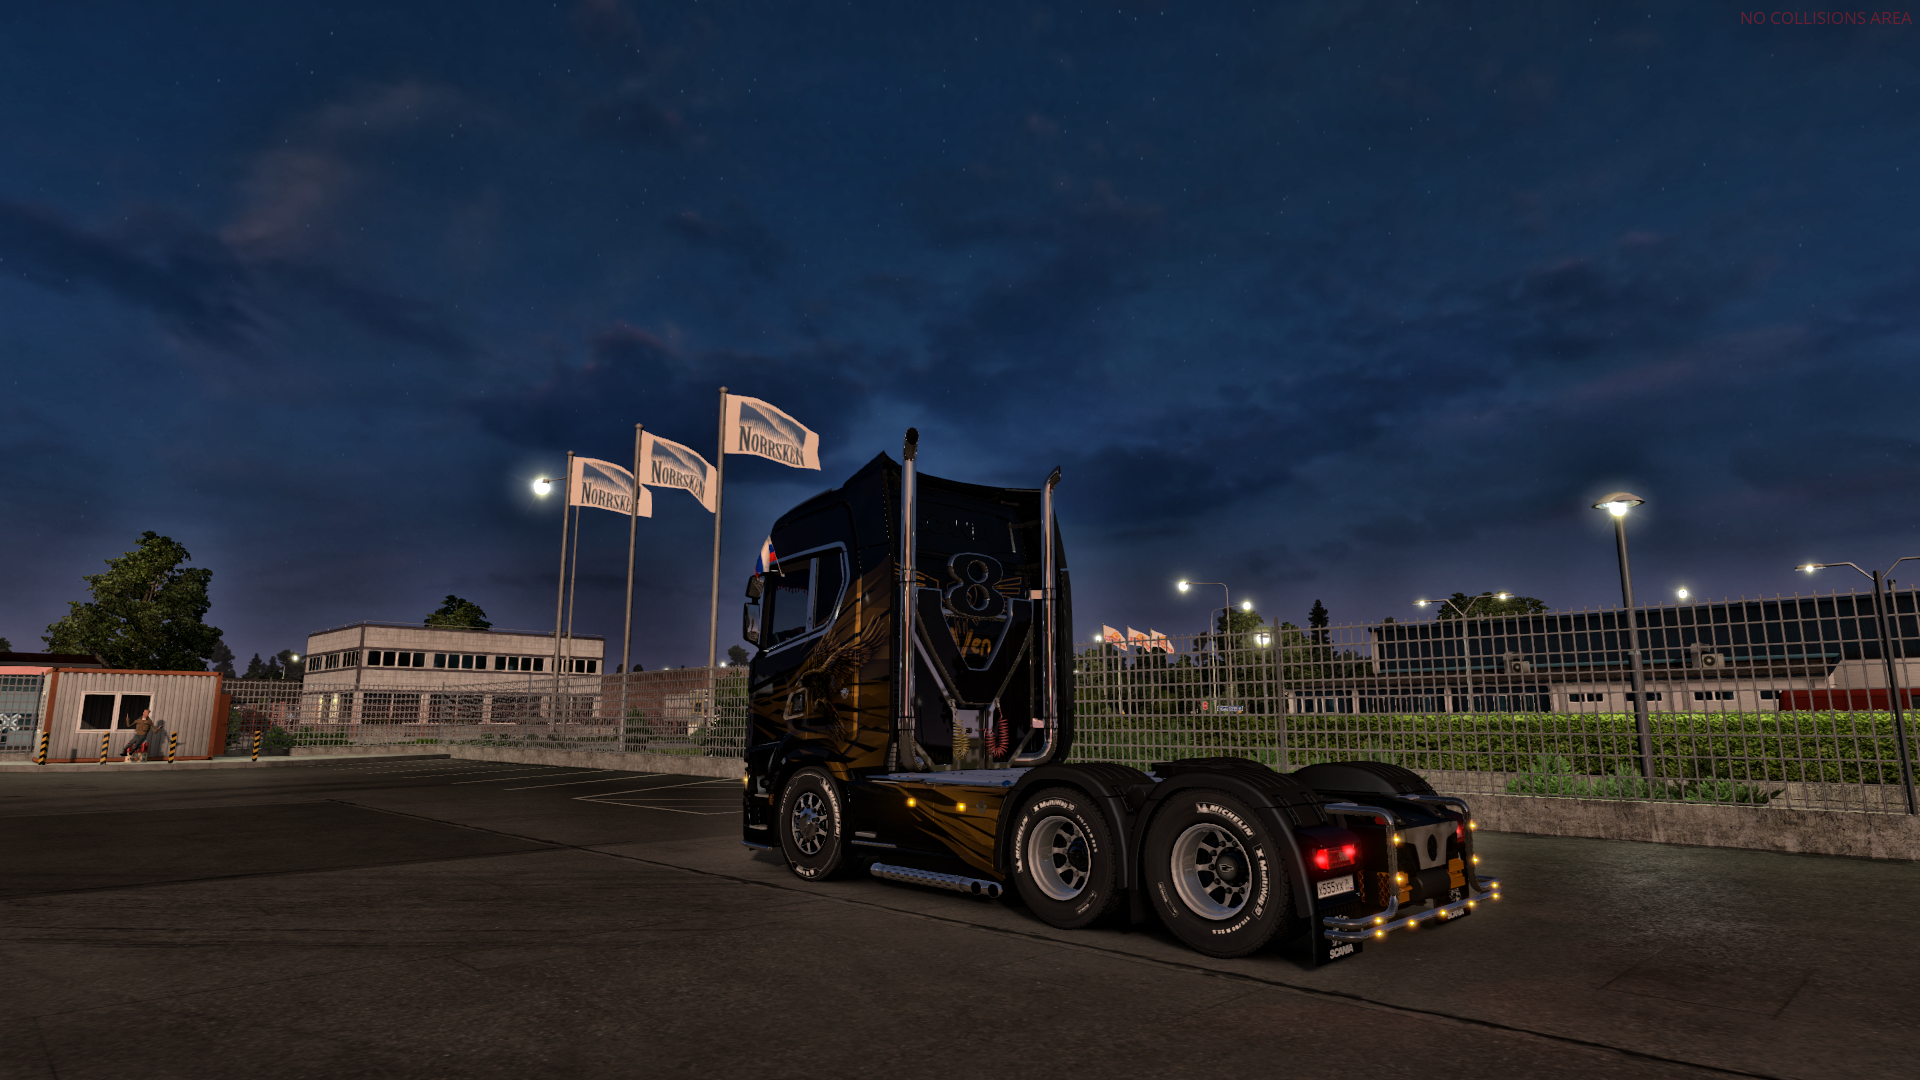 ets2_20190414_234105_00.png